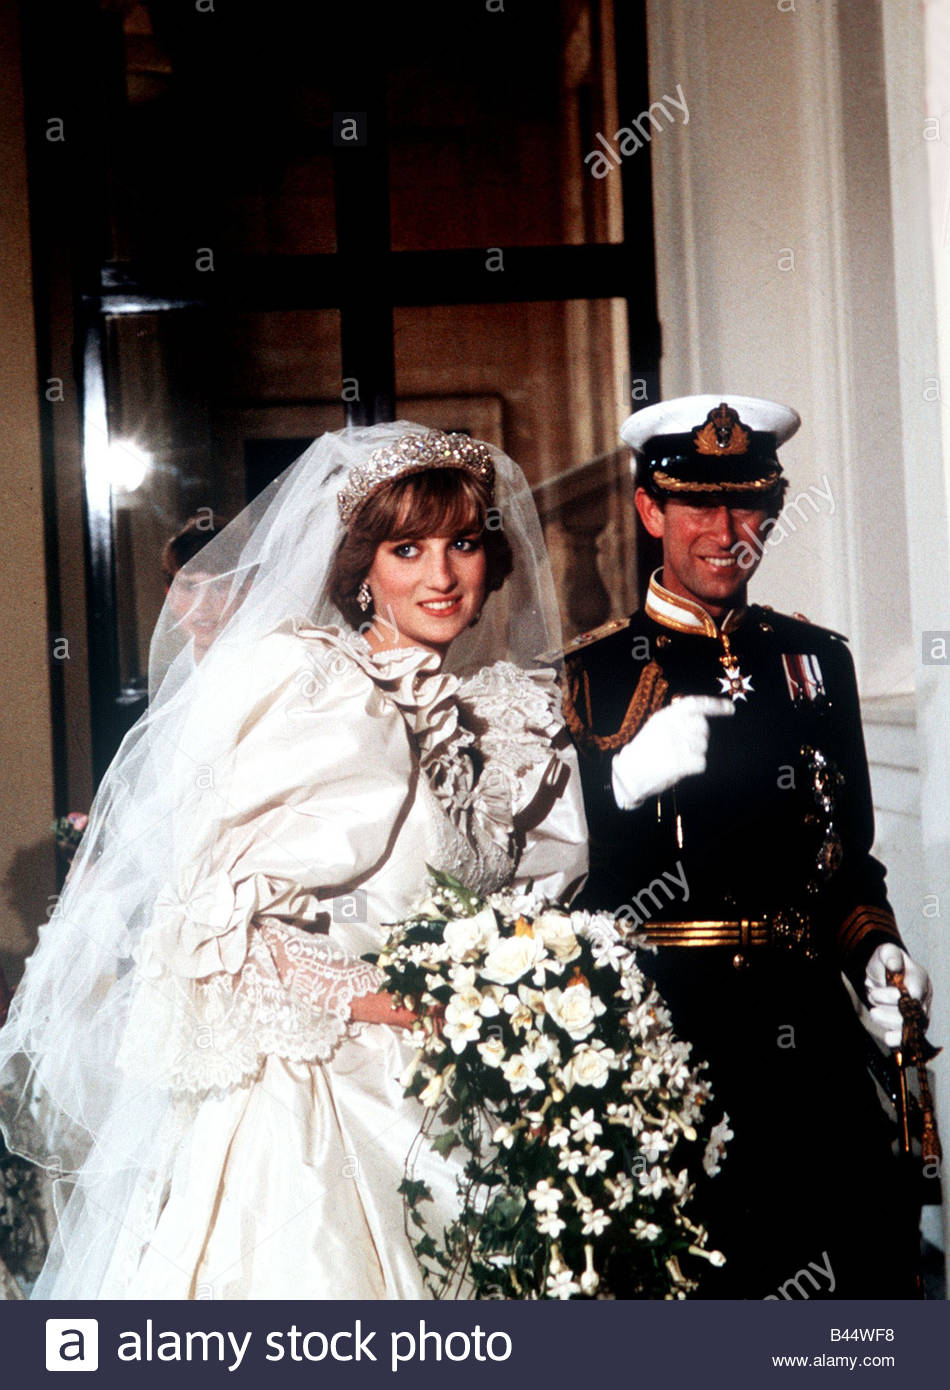 Charles And Diana Wedding.Wedding Of Prince Charles Lady Diana Spencer Arriving At Buckingham